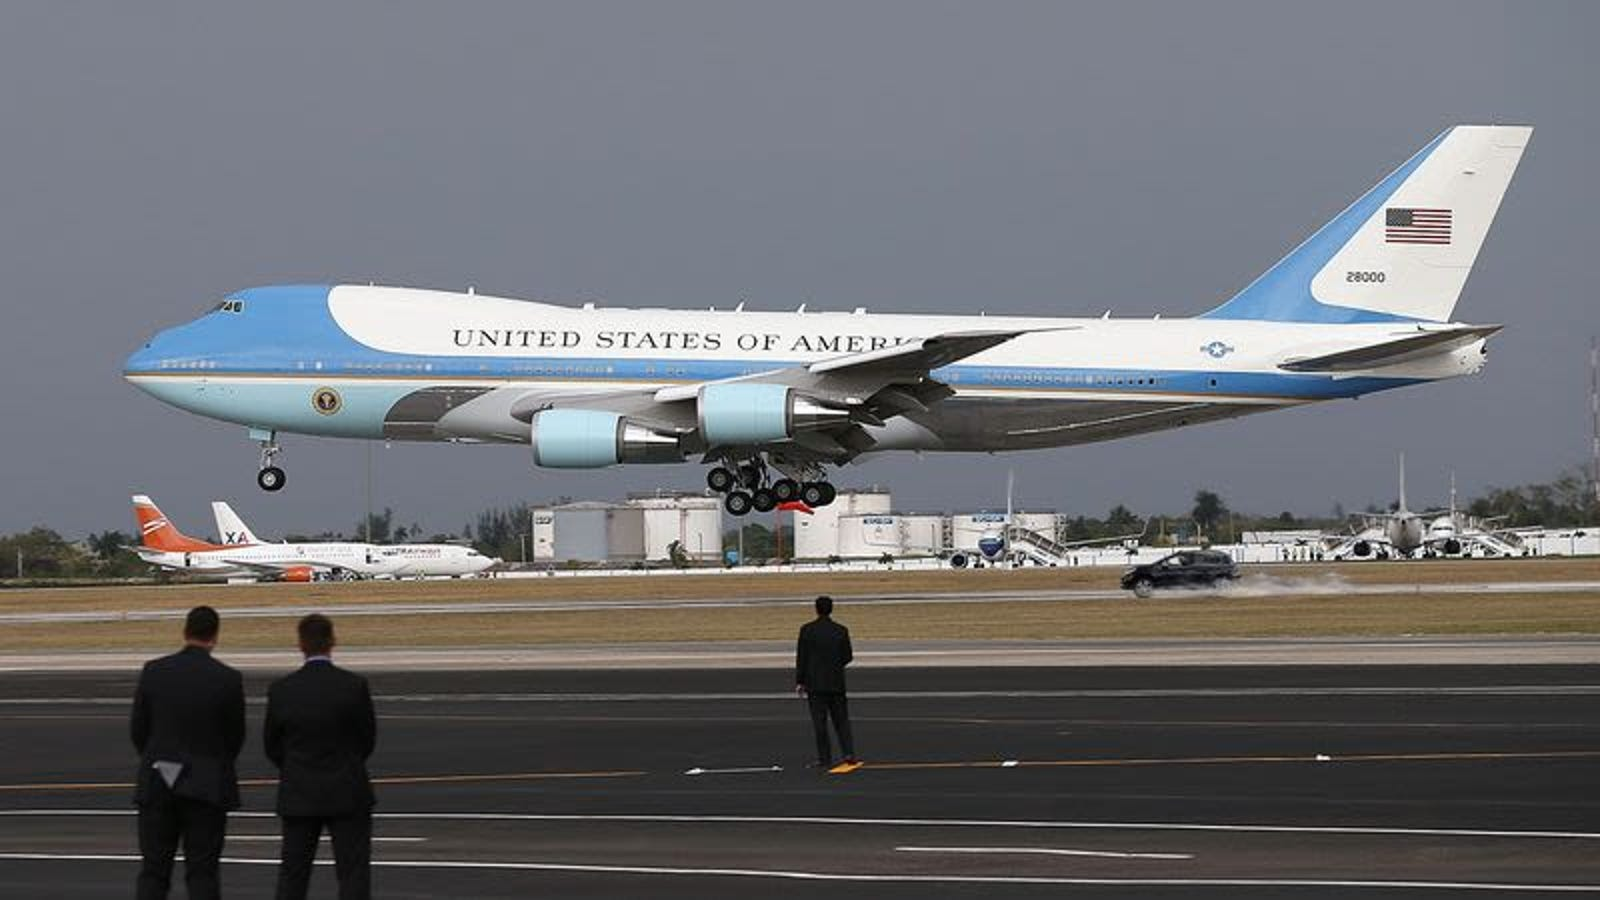 Robert Mueller Driving SUV 100 MPH Down Runway As Air Force One Narrowly Lifts Off